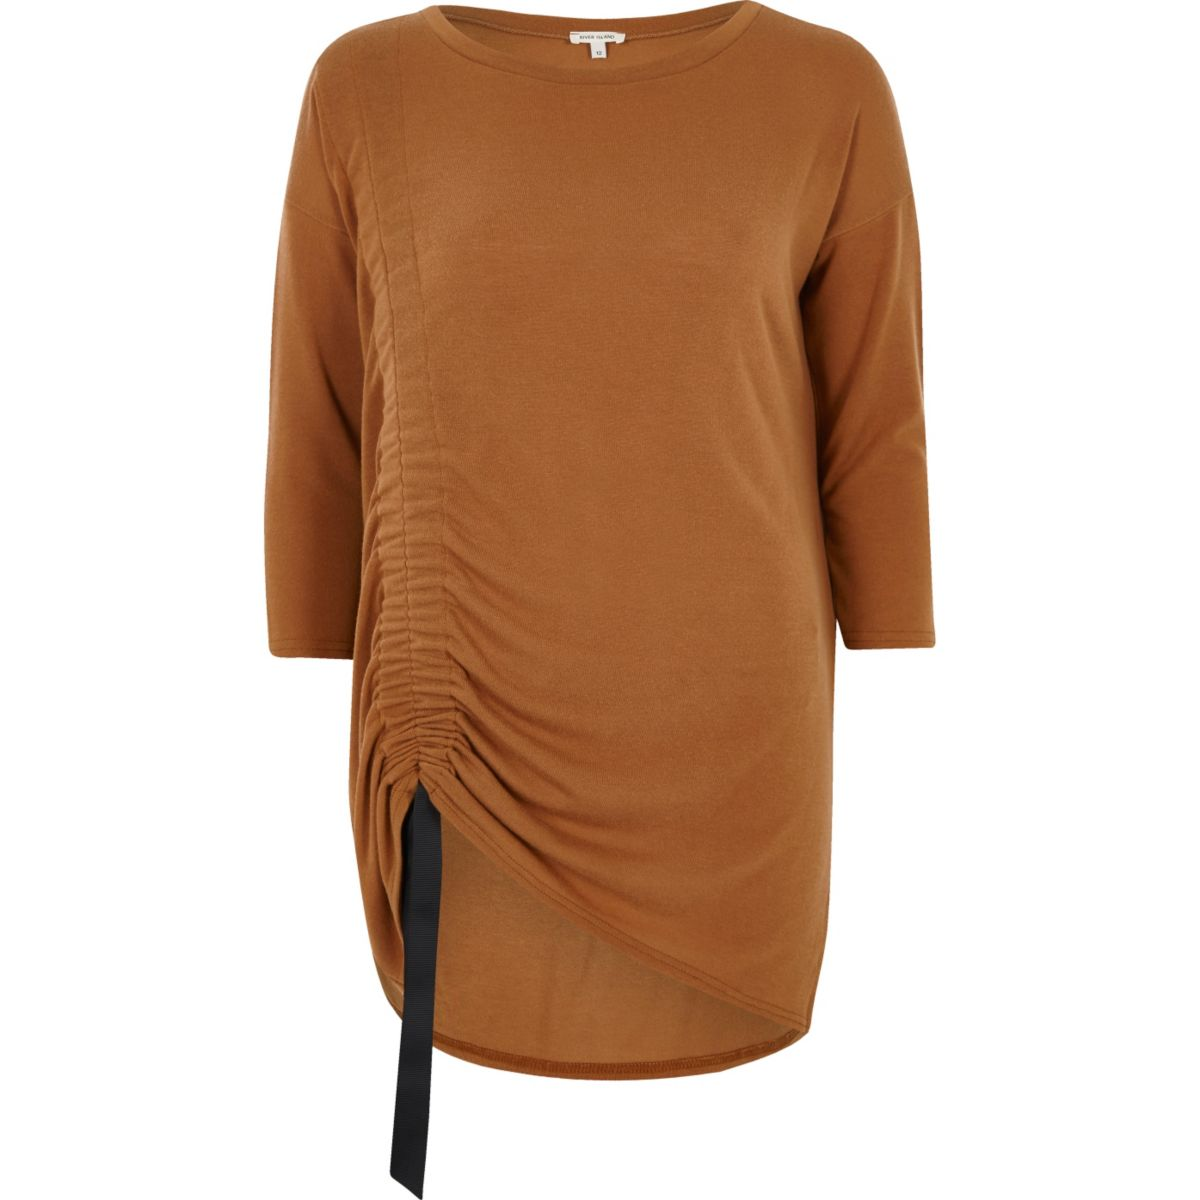 Camel ruched drawstring longline top